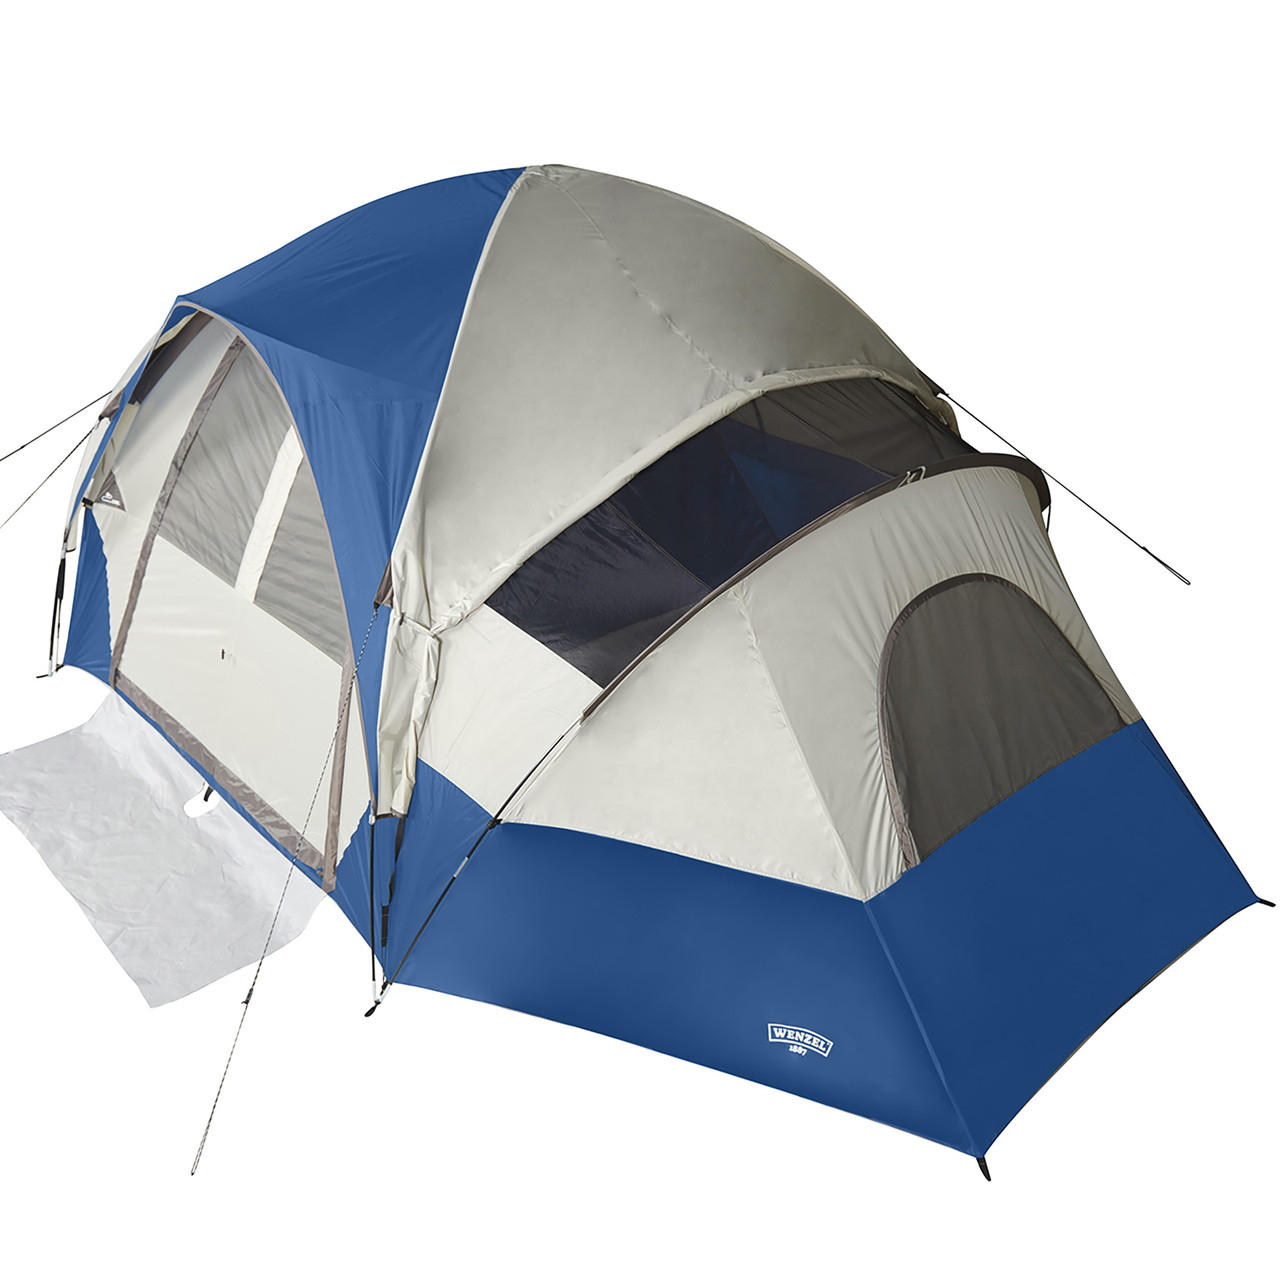 Wenzel Pinyon 10 Person Dome Tent, blue/white, front view, with fly, top view